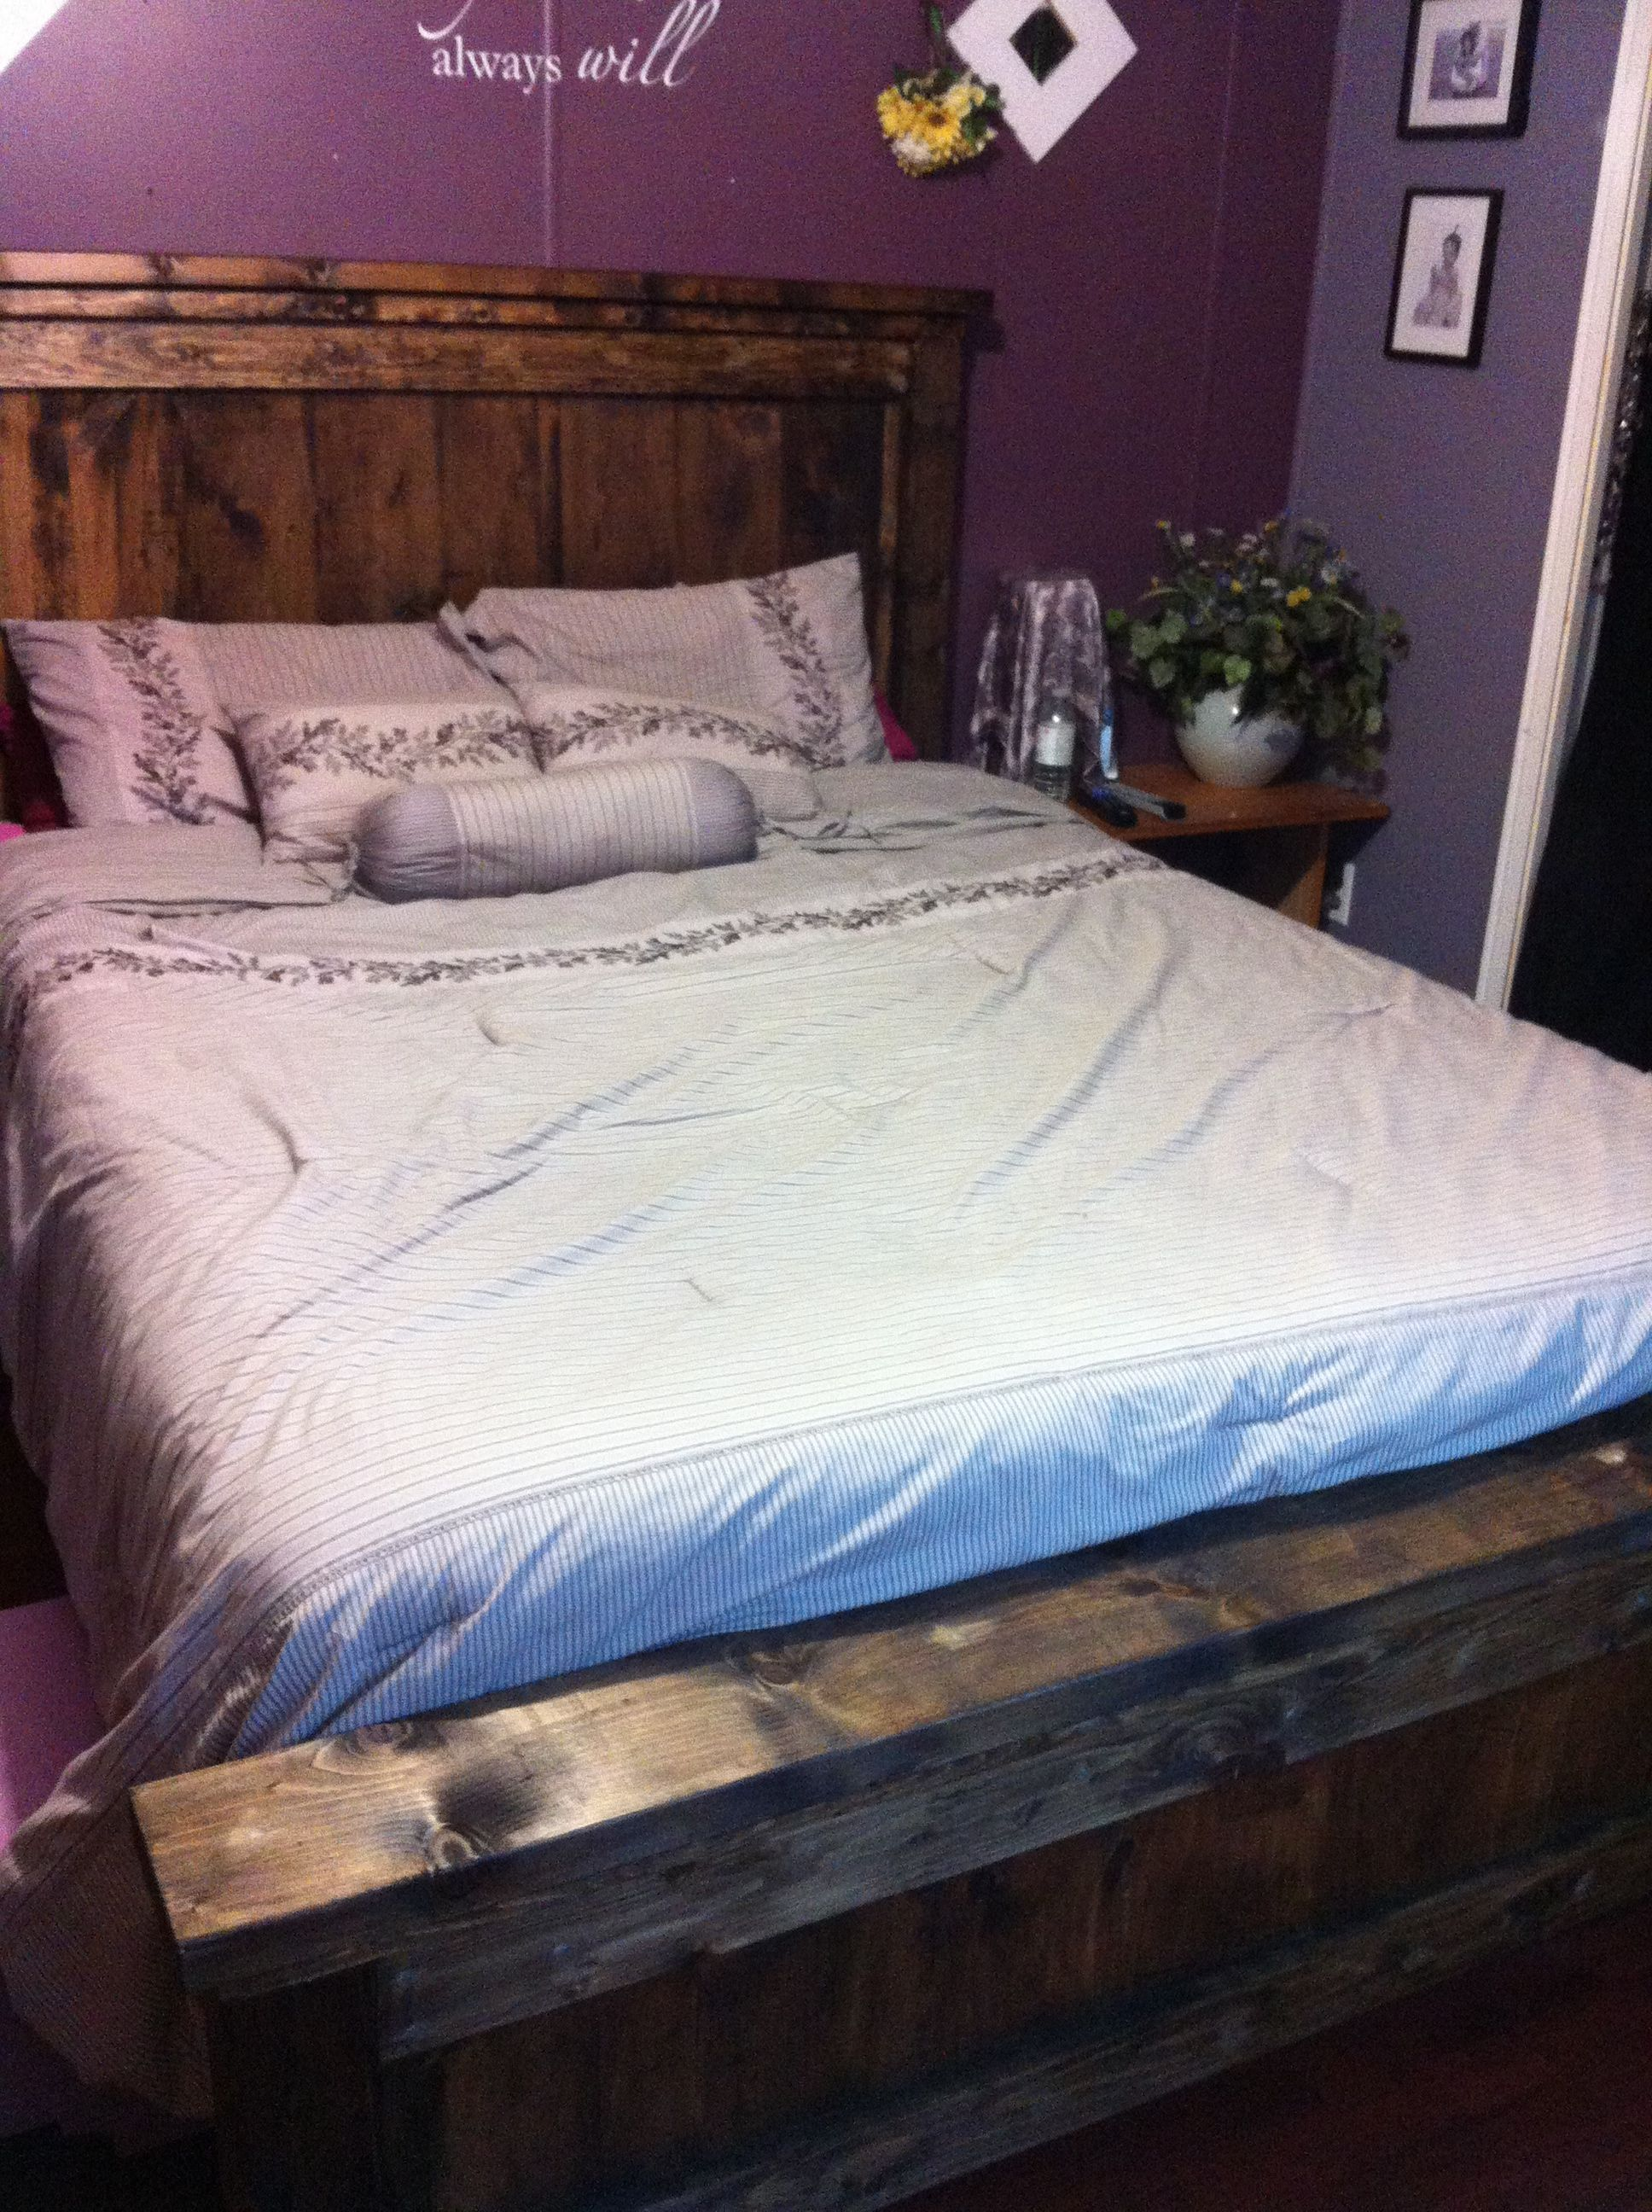 Farmhouse Bed Queen Sized Bed, Bed plans, Queen beds